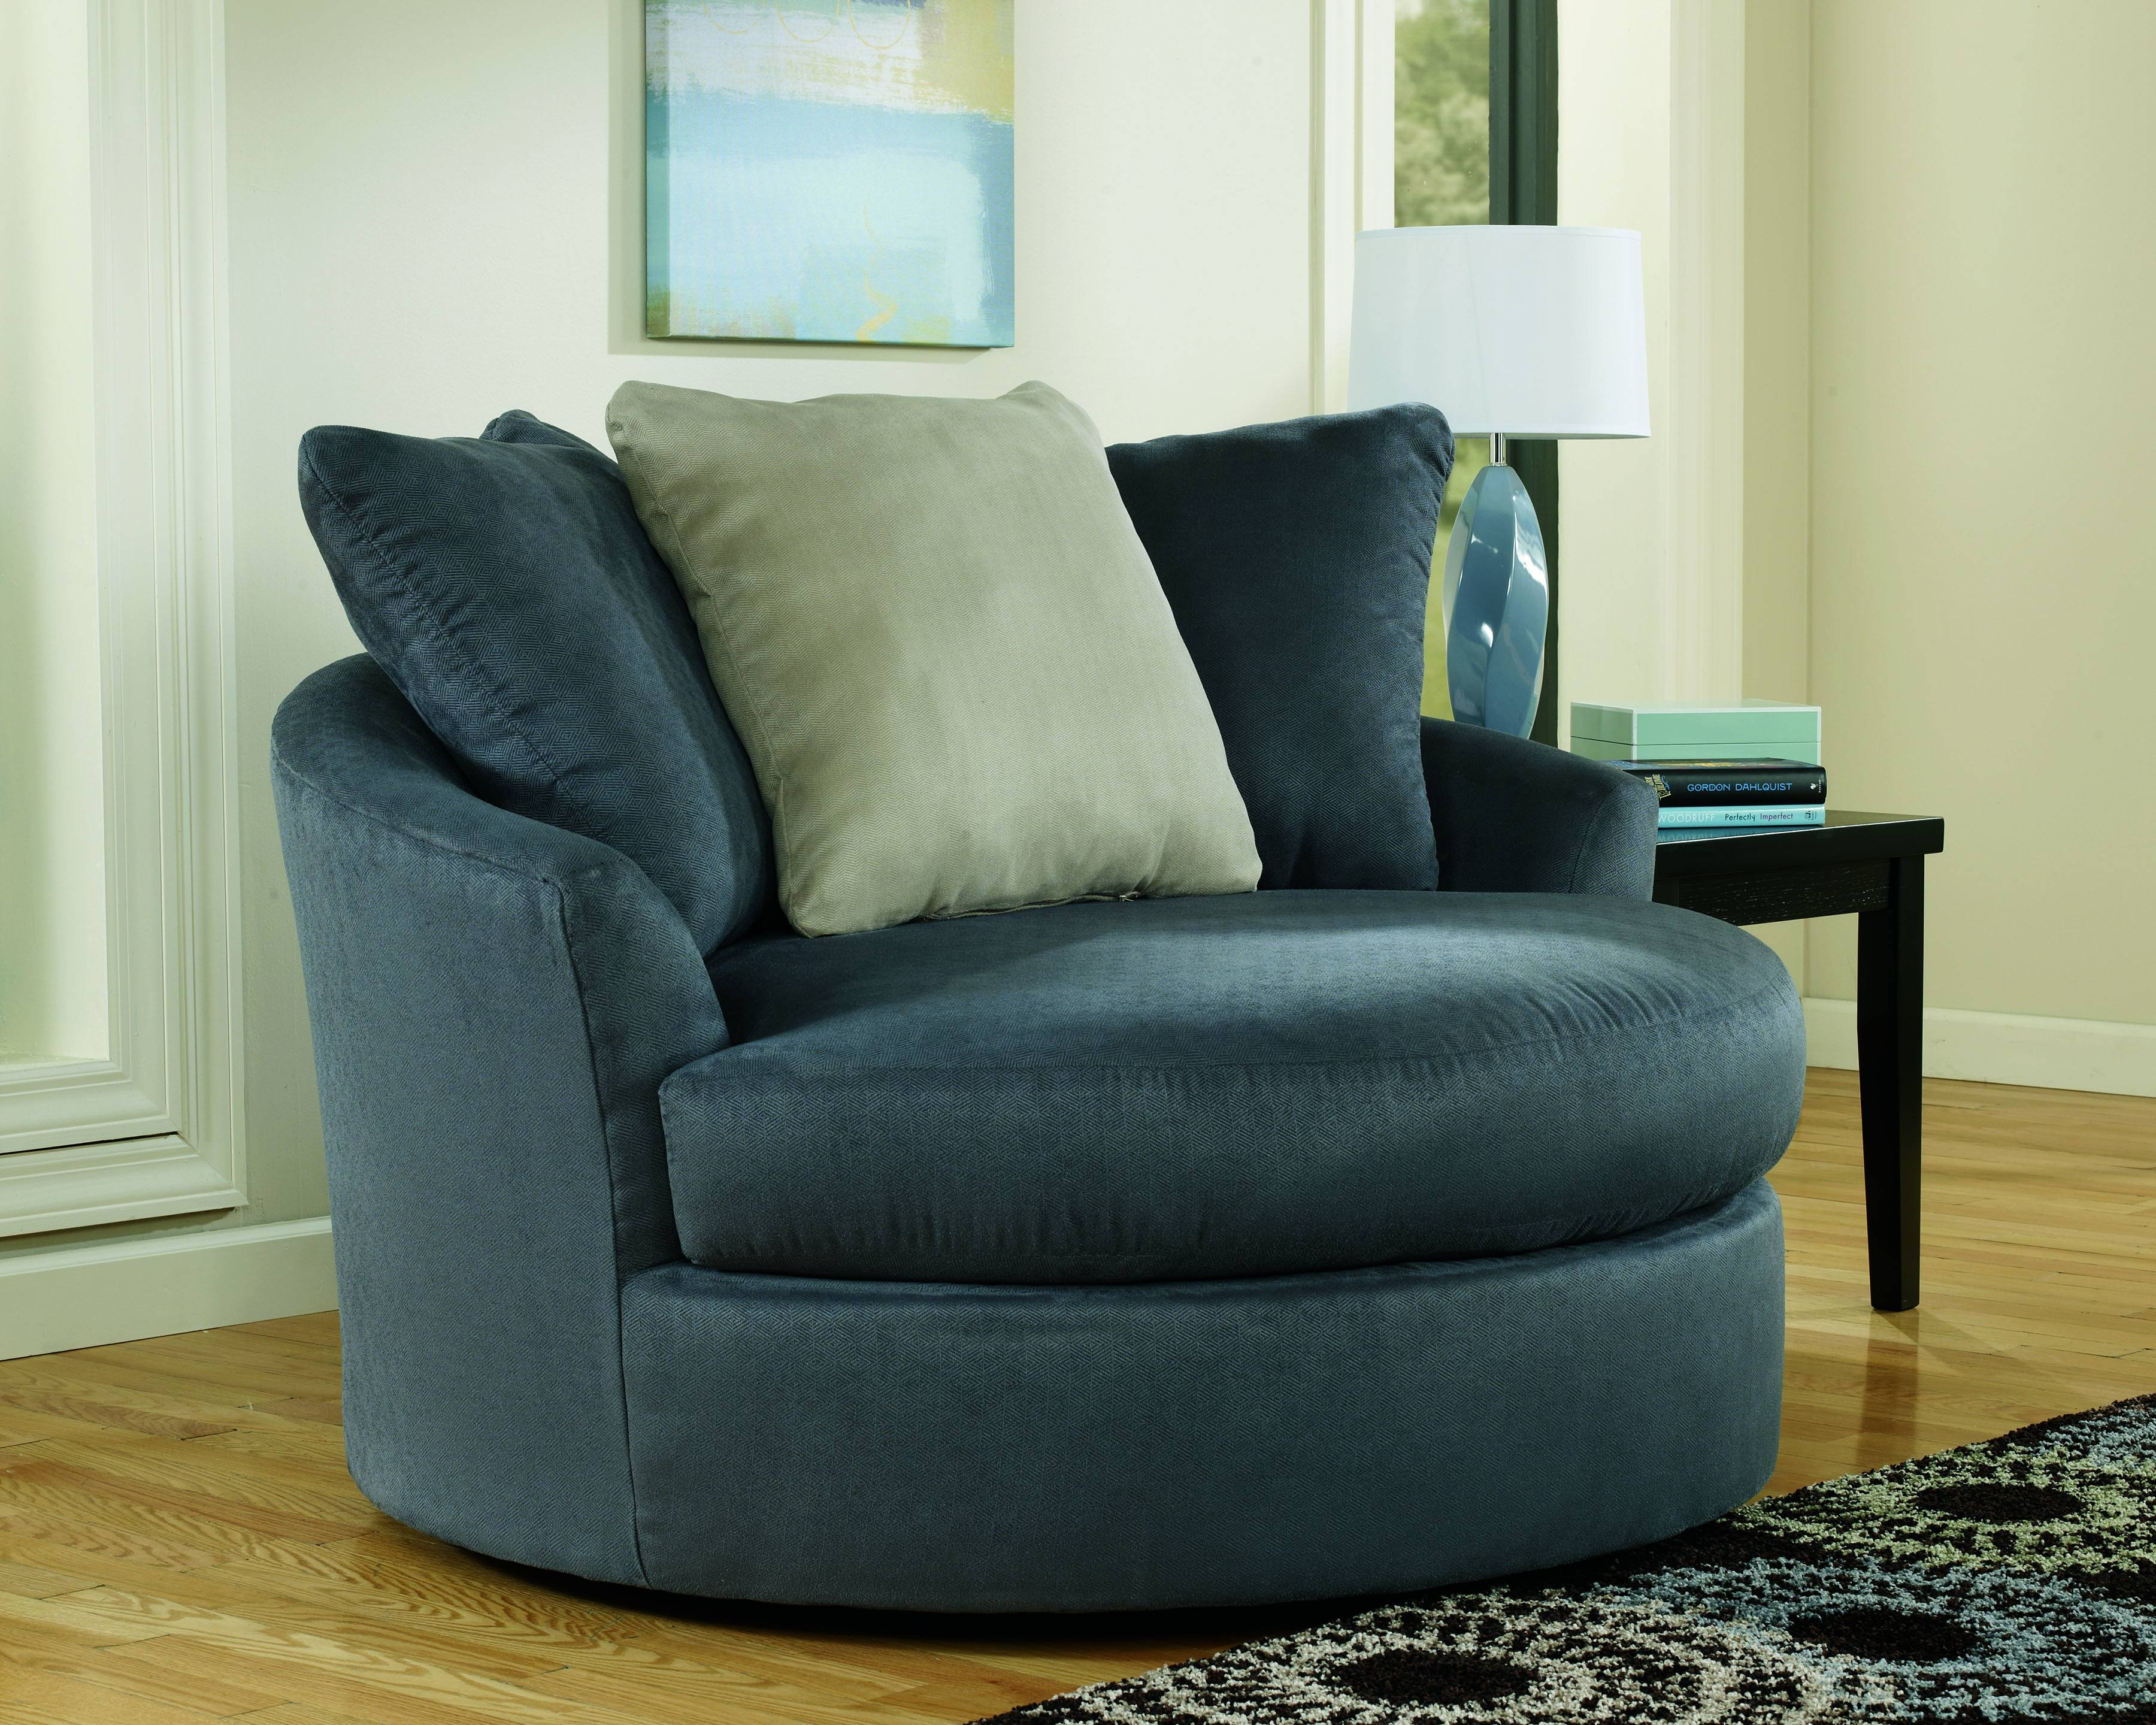 Best Circle Sofa Chair 42 About Remodel Sofas And Couches Ideas for Circle Sofa Chairs (Image 3 of 30)